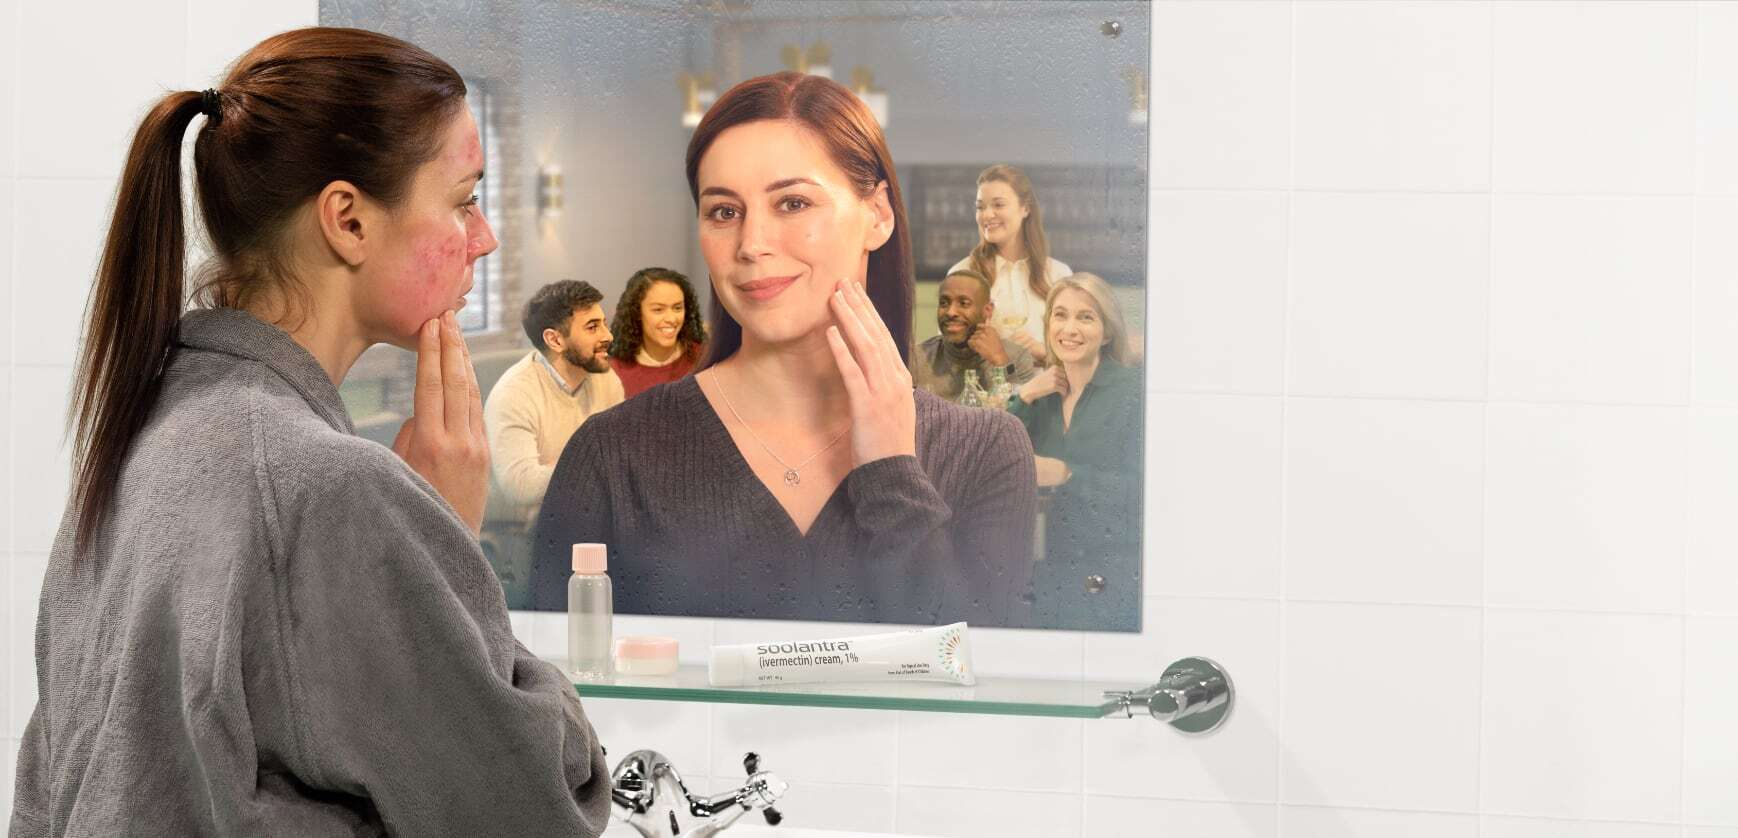 Image of woman with rosacea looking into a mirror and seeing clearer skin after using Soolantra